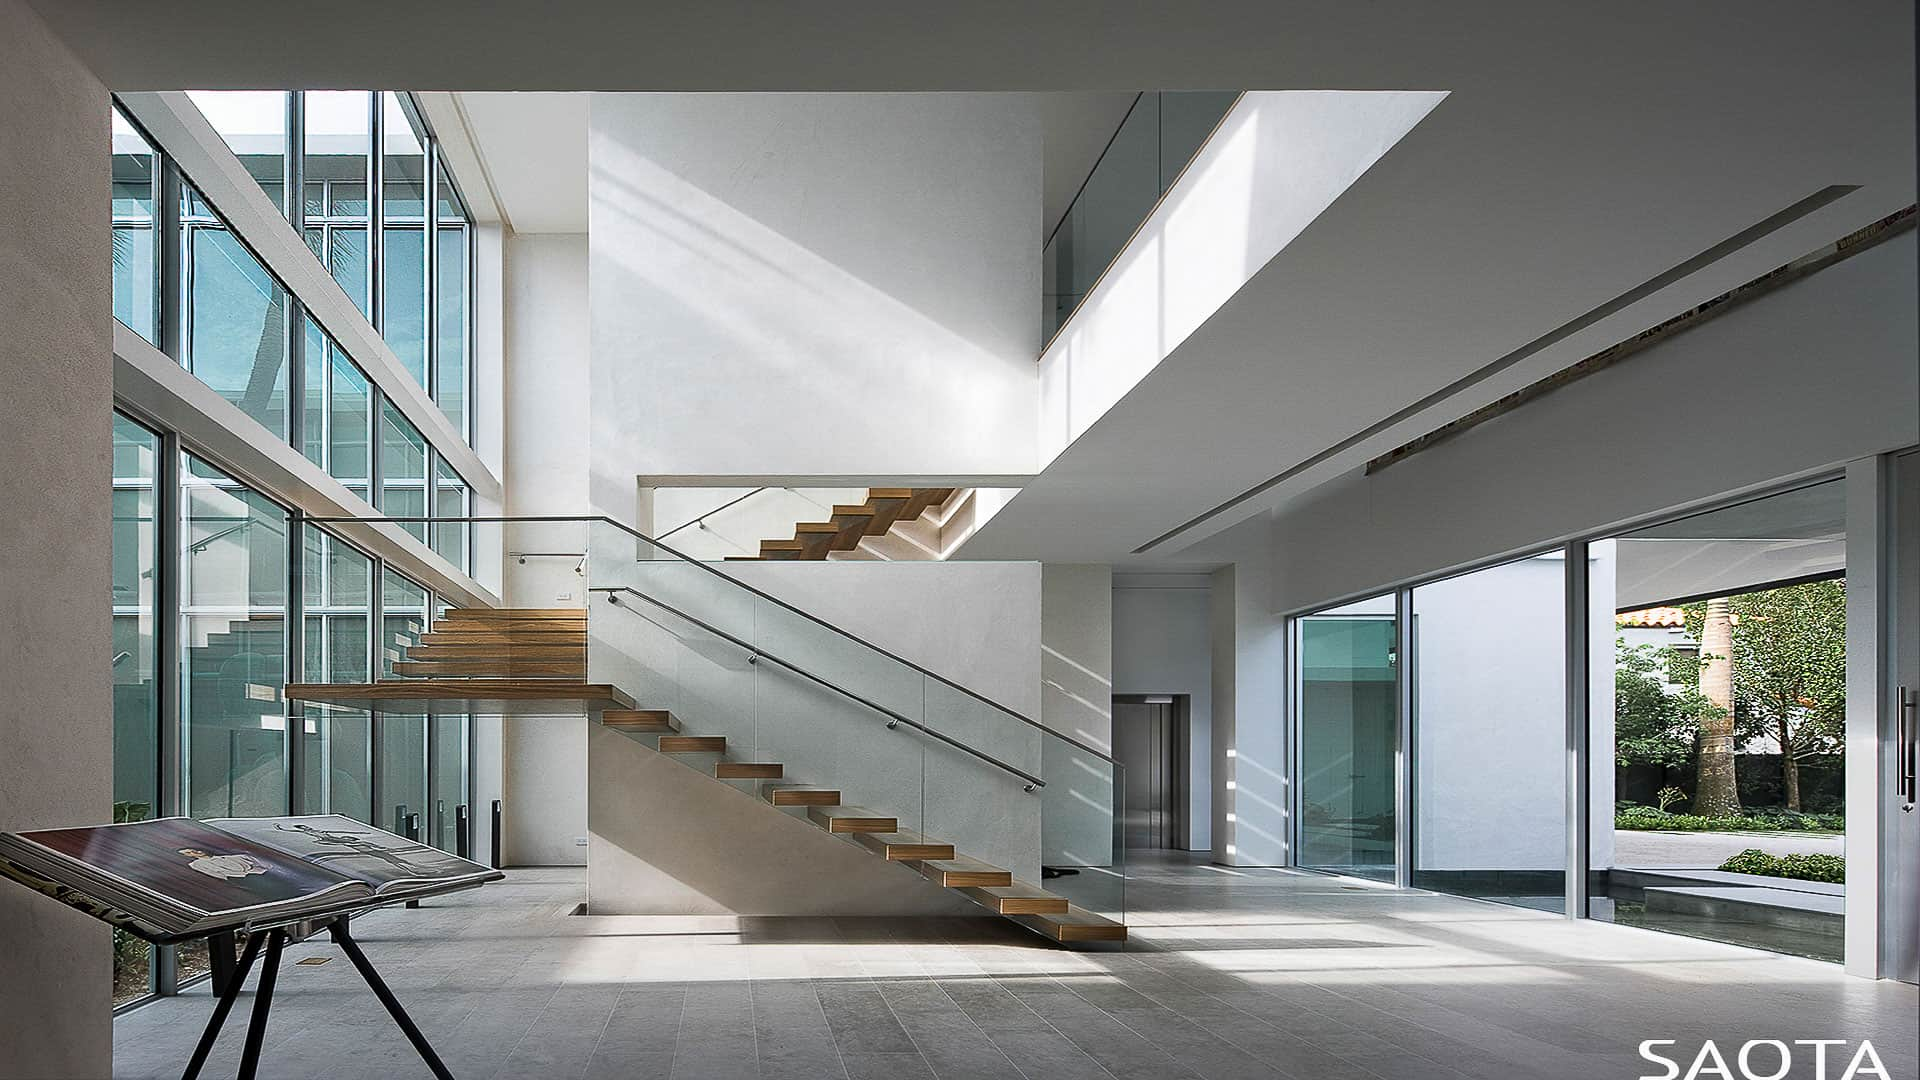 This large foyer offers a wide space. The hardwood flooring perfectly fits with the white walls and glass windows all over the space. The staircase looks so modish as well.